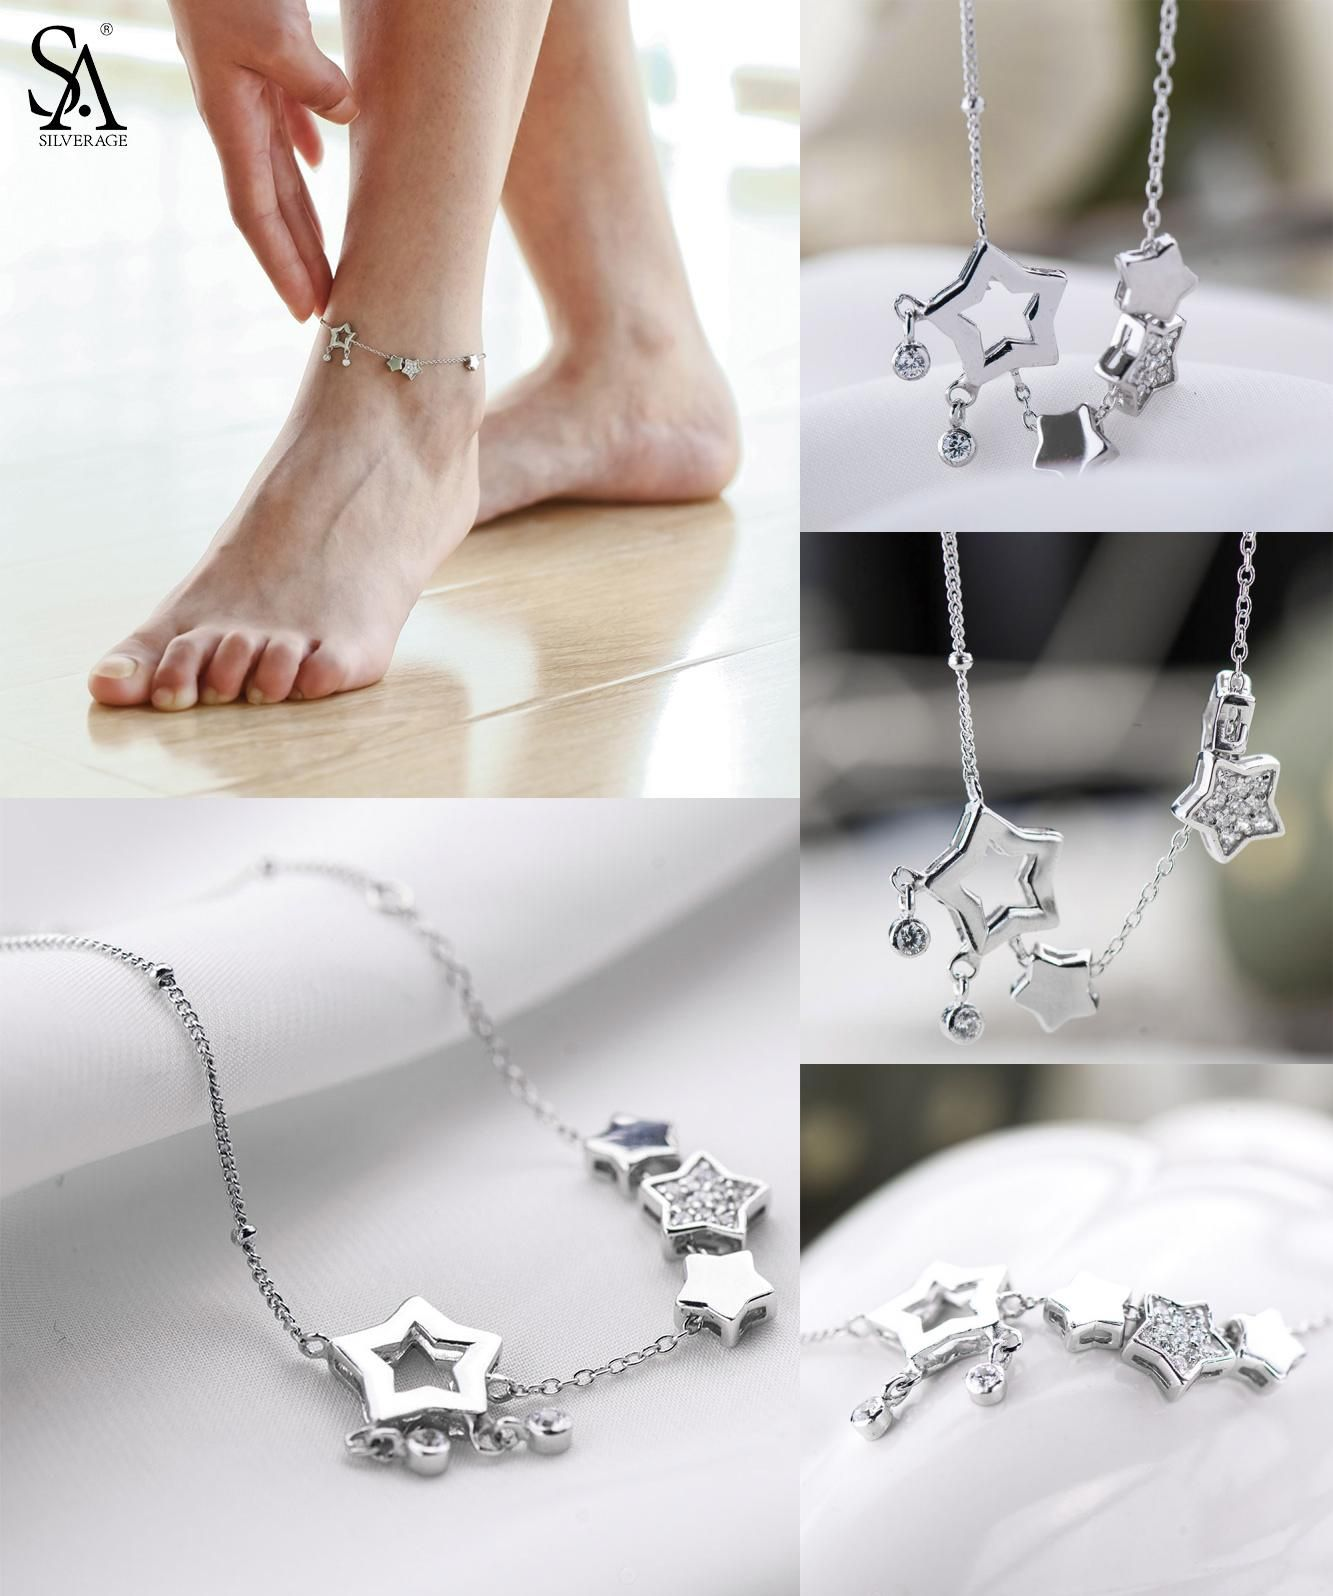 wedding real gifts sa simple sterling fine pin jewelry heart anklets women silverage silver for anklet